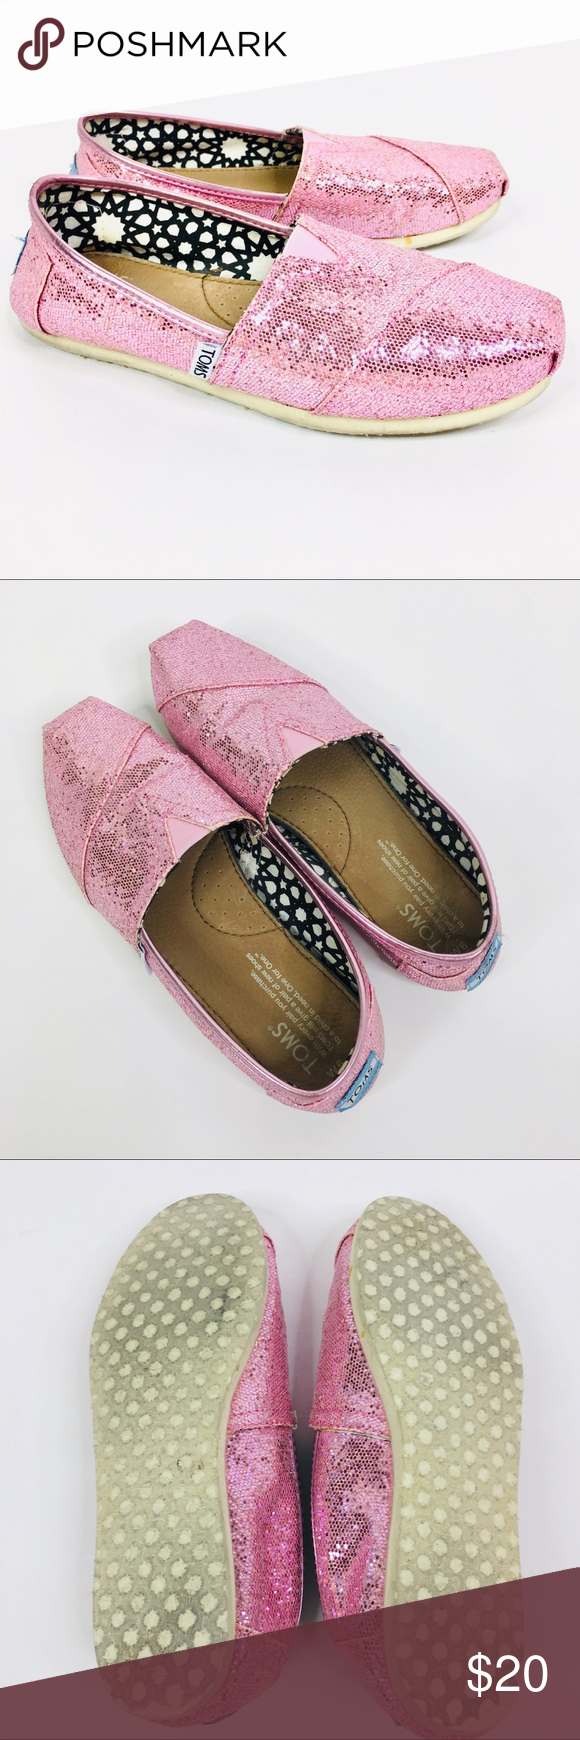 316720ea5078 TOMS Pink Glitter Excellent Condition Classic pink glitter TOMS. Size 6  women. Excellent clean